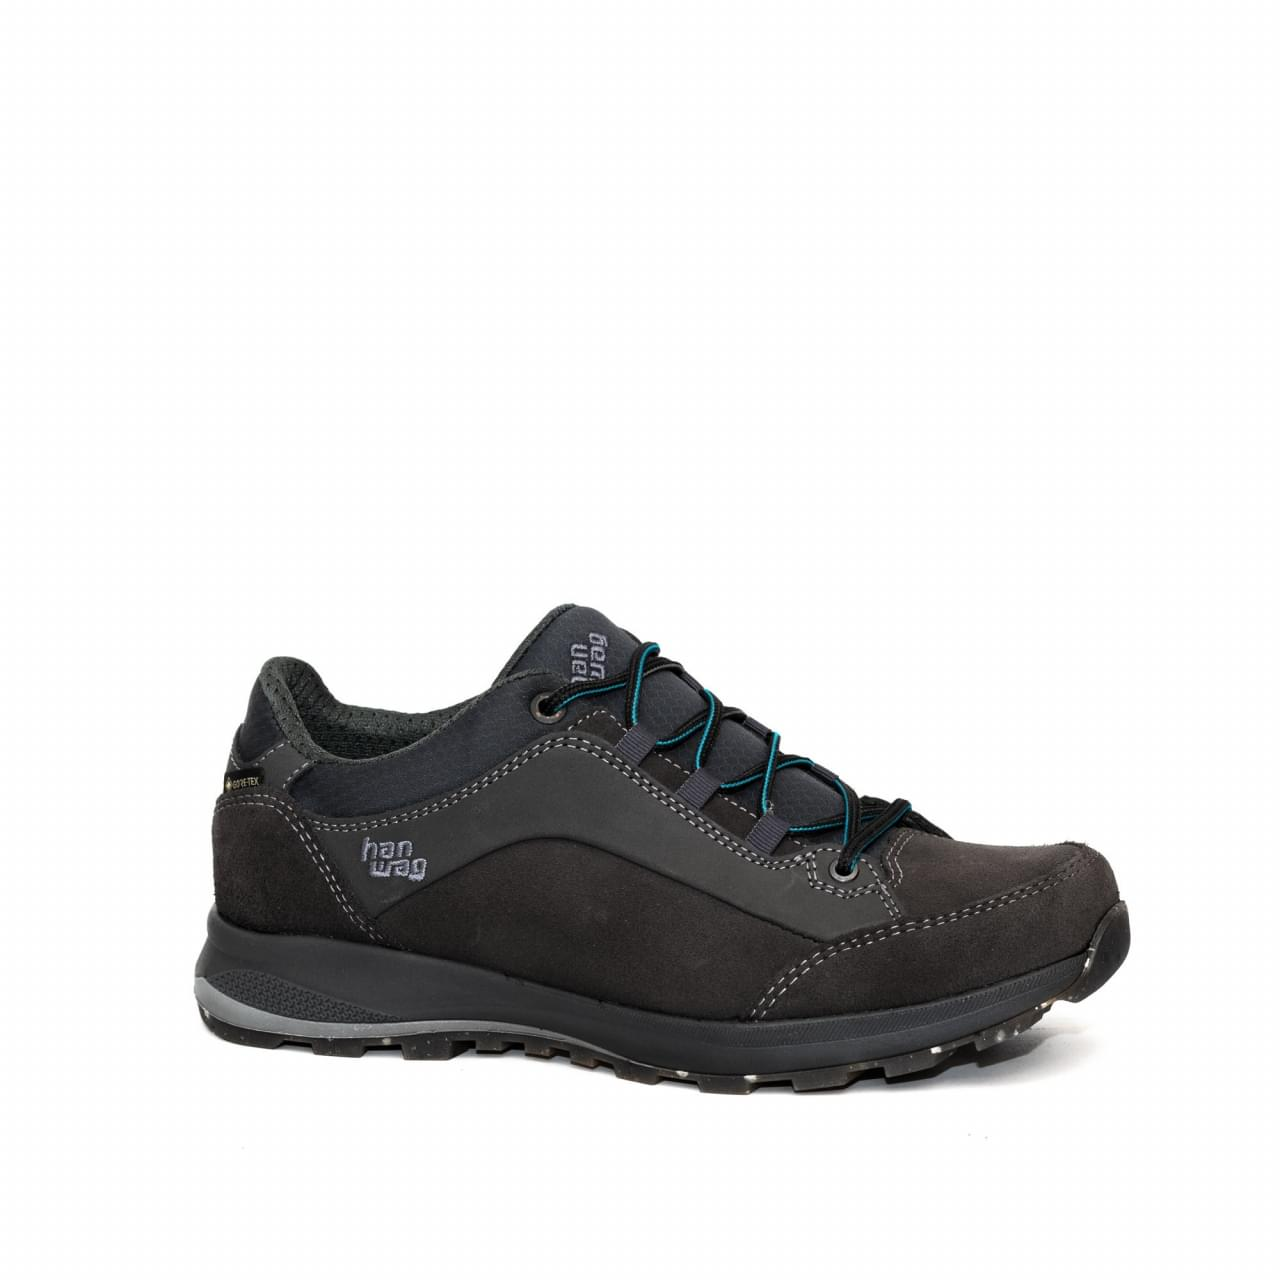 Hanwag Banks Low Lady GTX Wandelschoen Dames Grijs